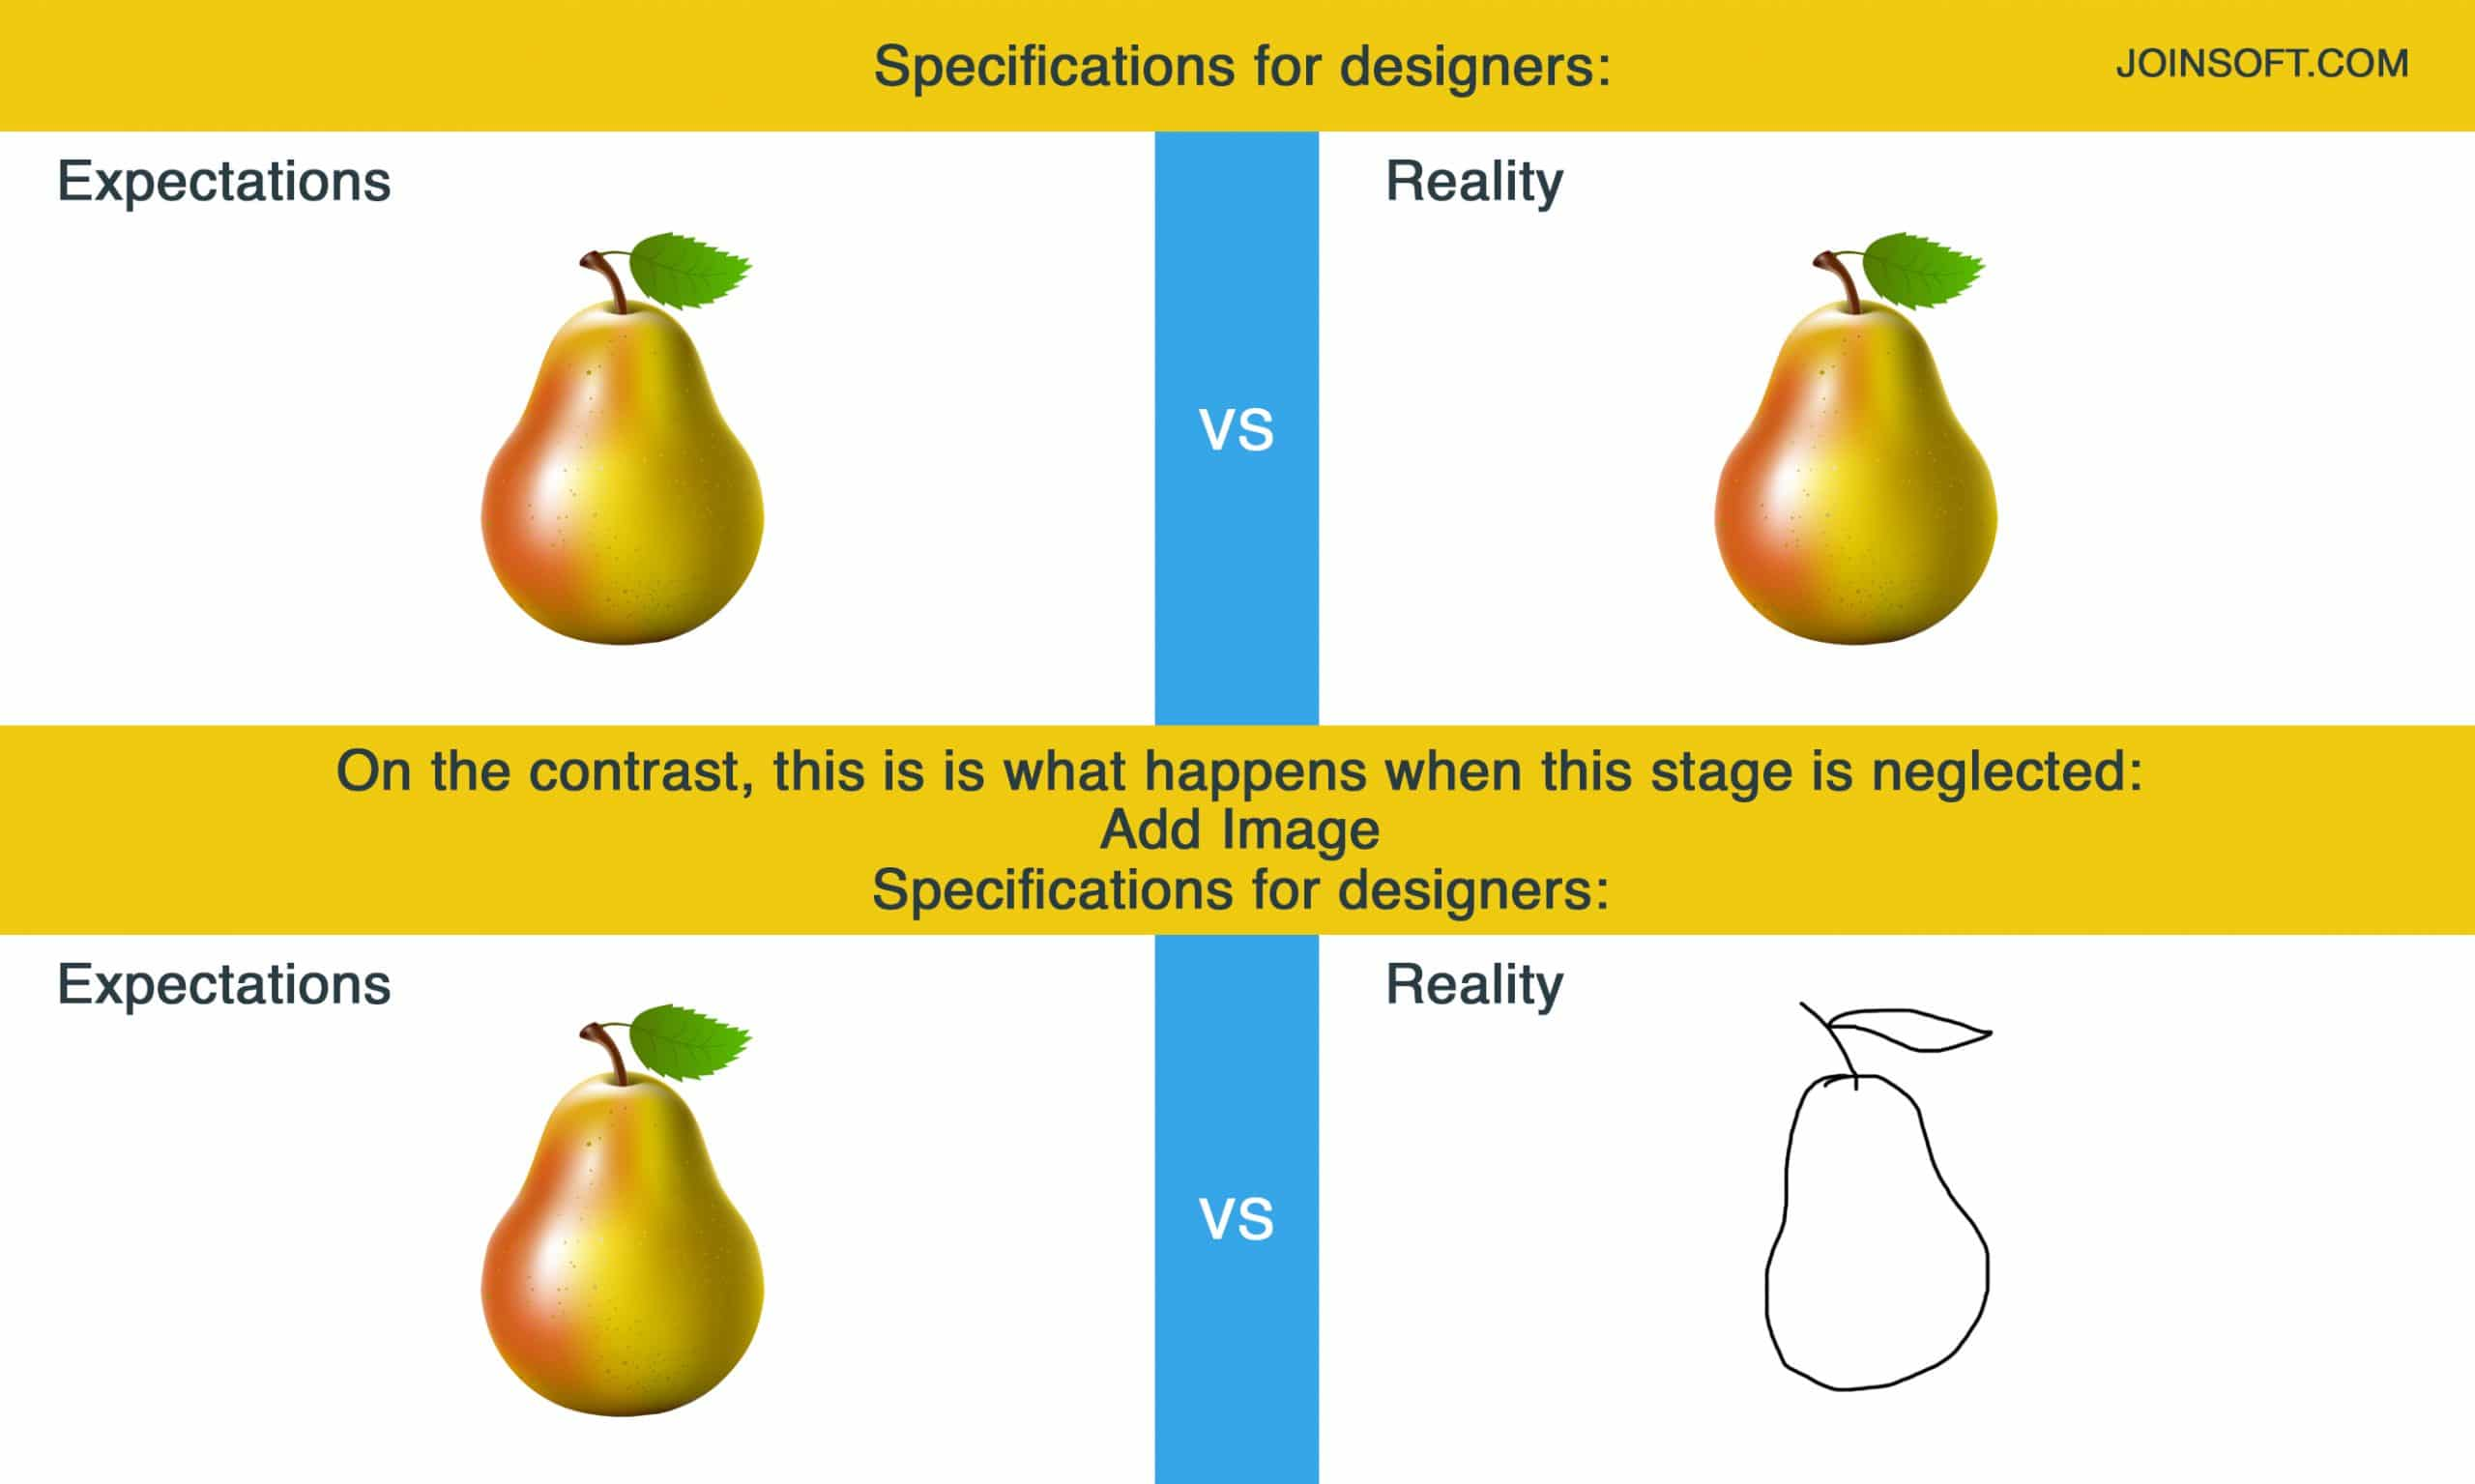 Specifications for designers